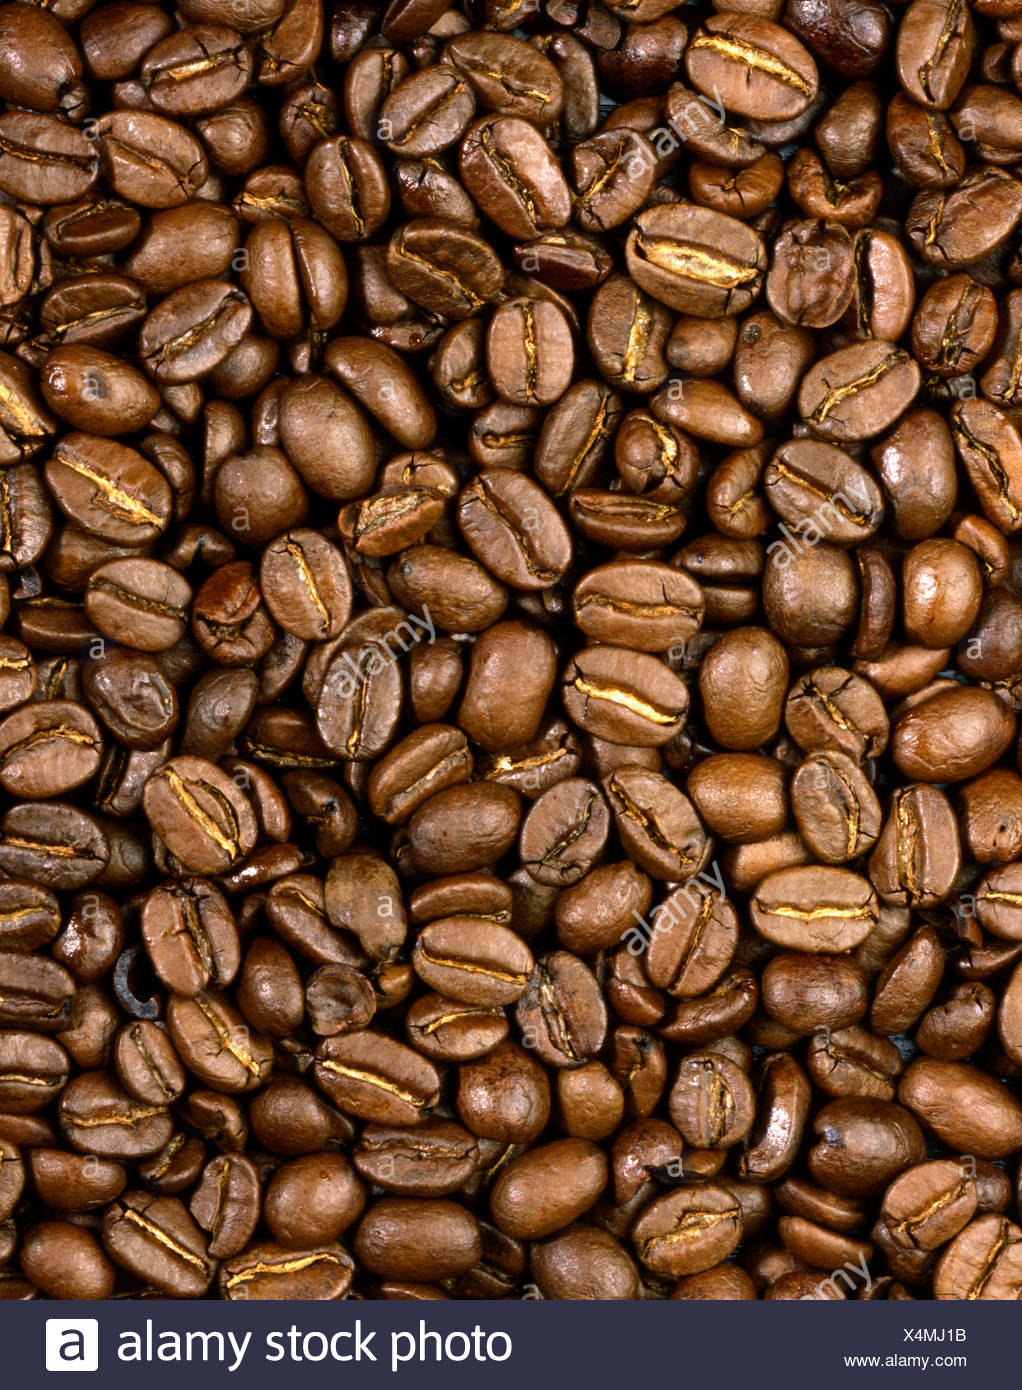 roasted coffee beans - Stock Image